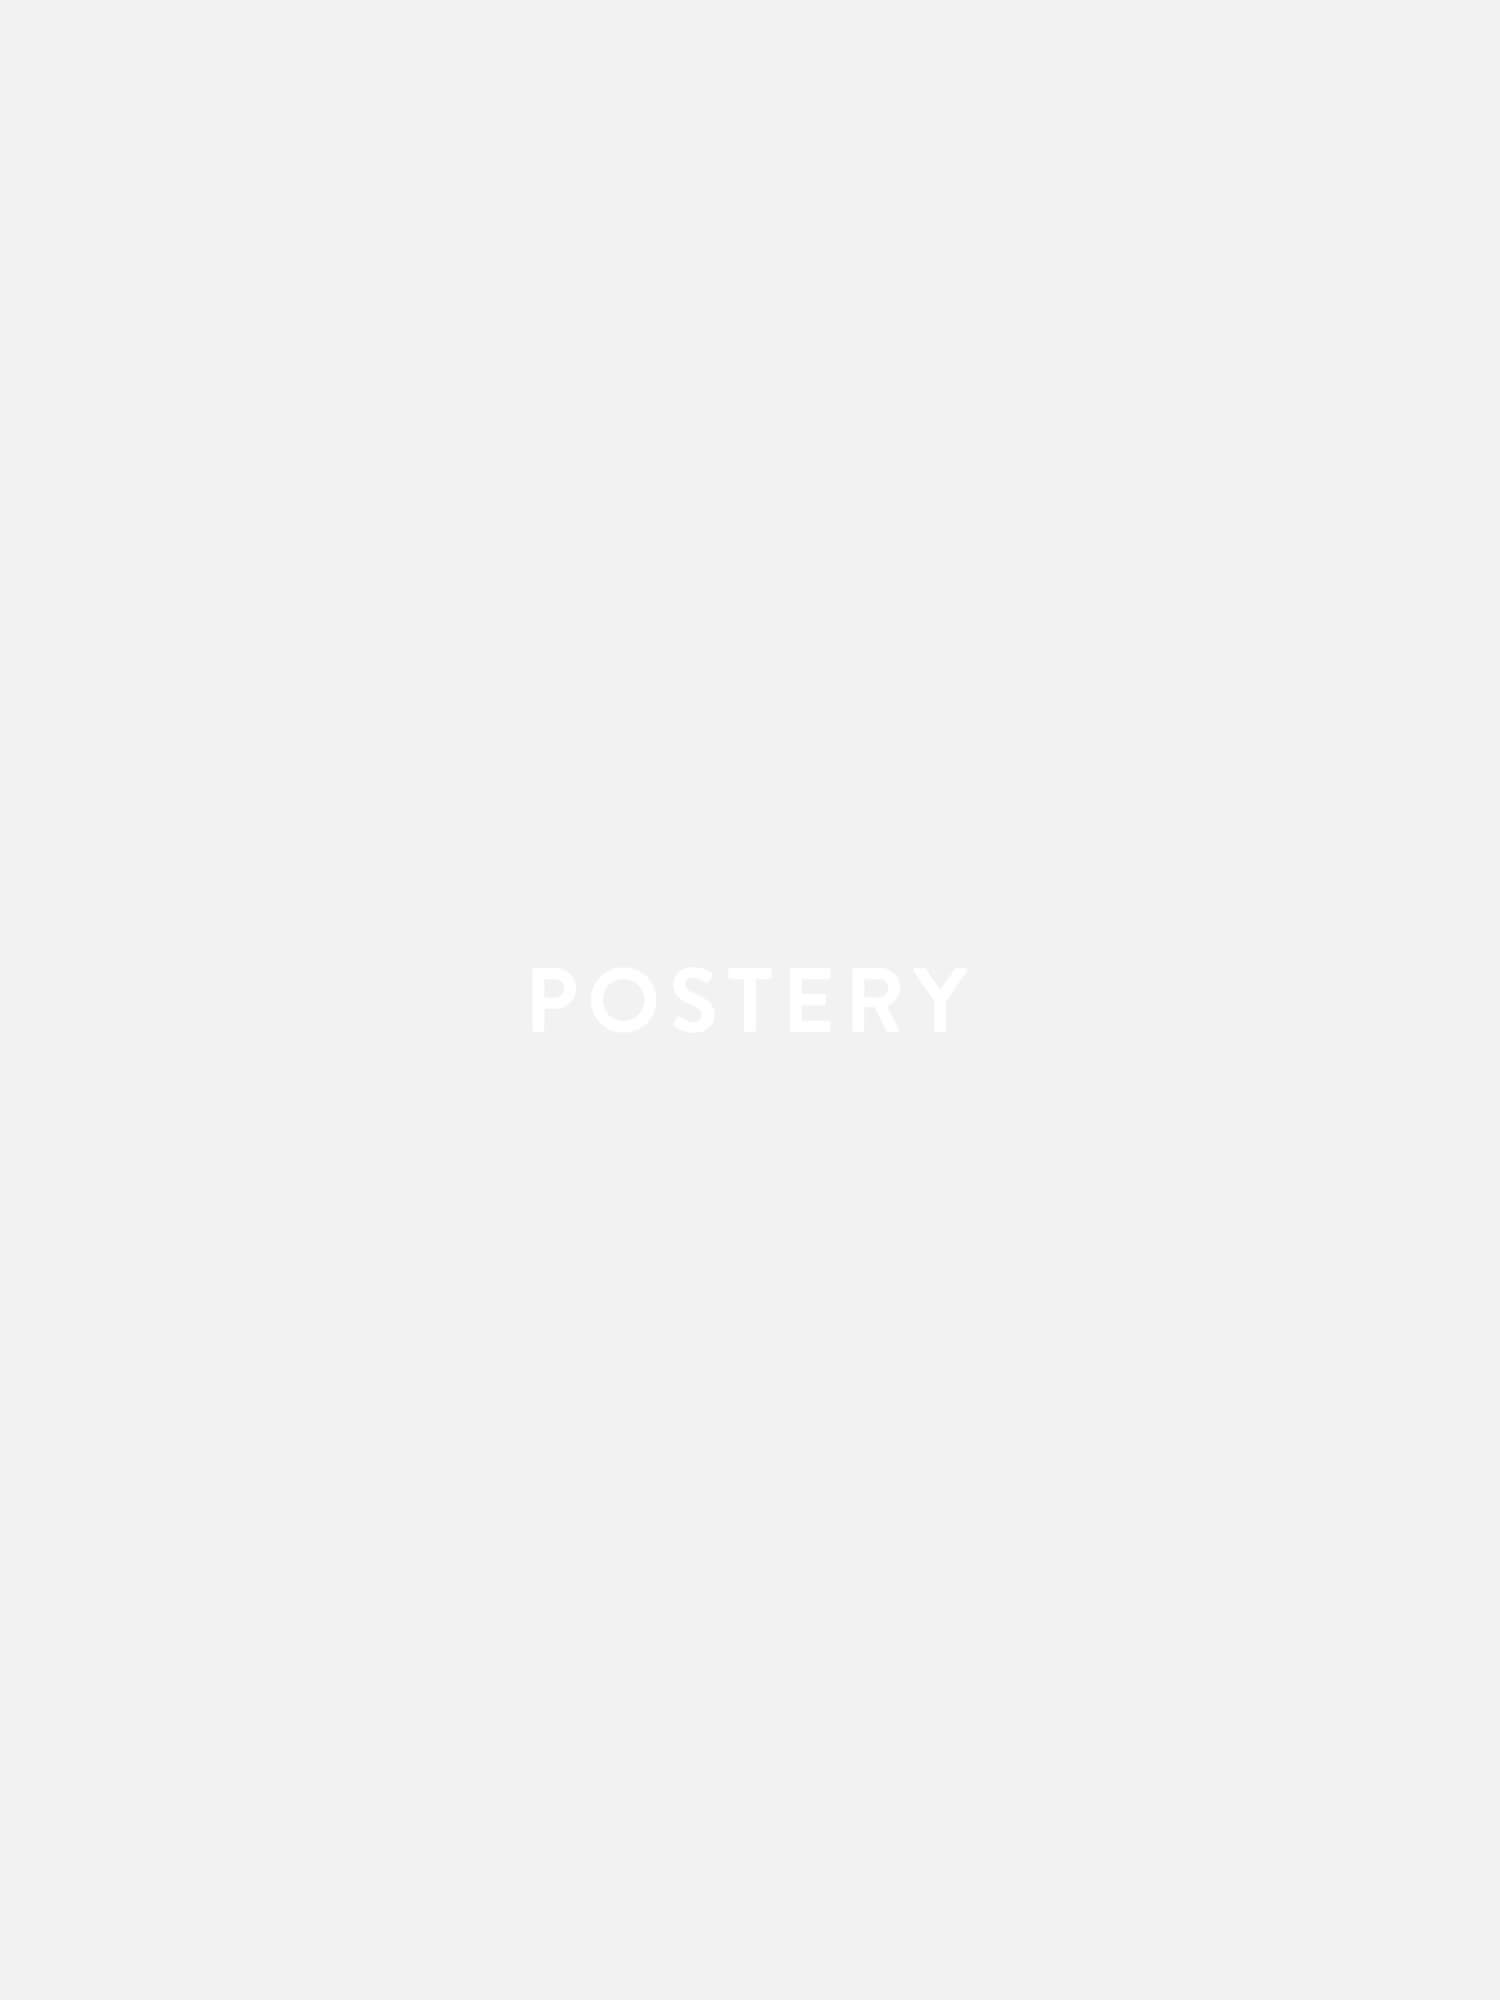 Green Bouquet Poster